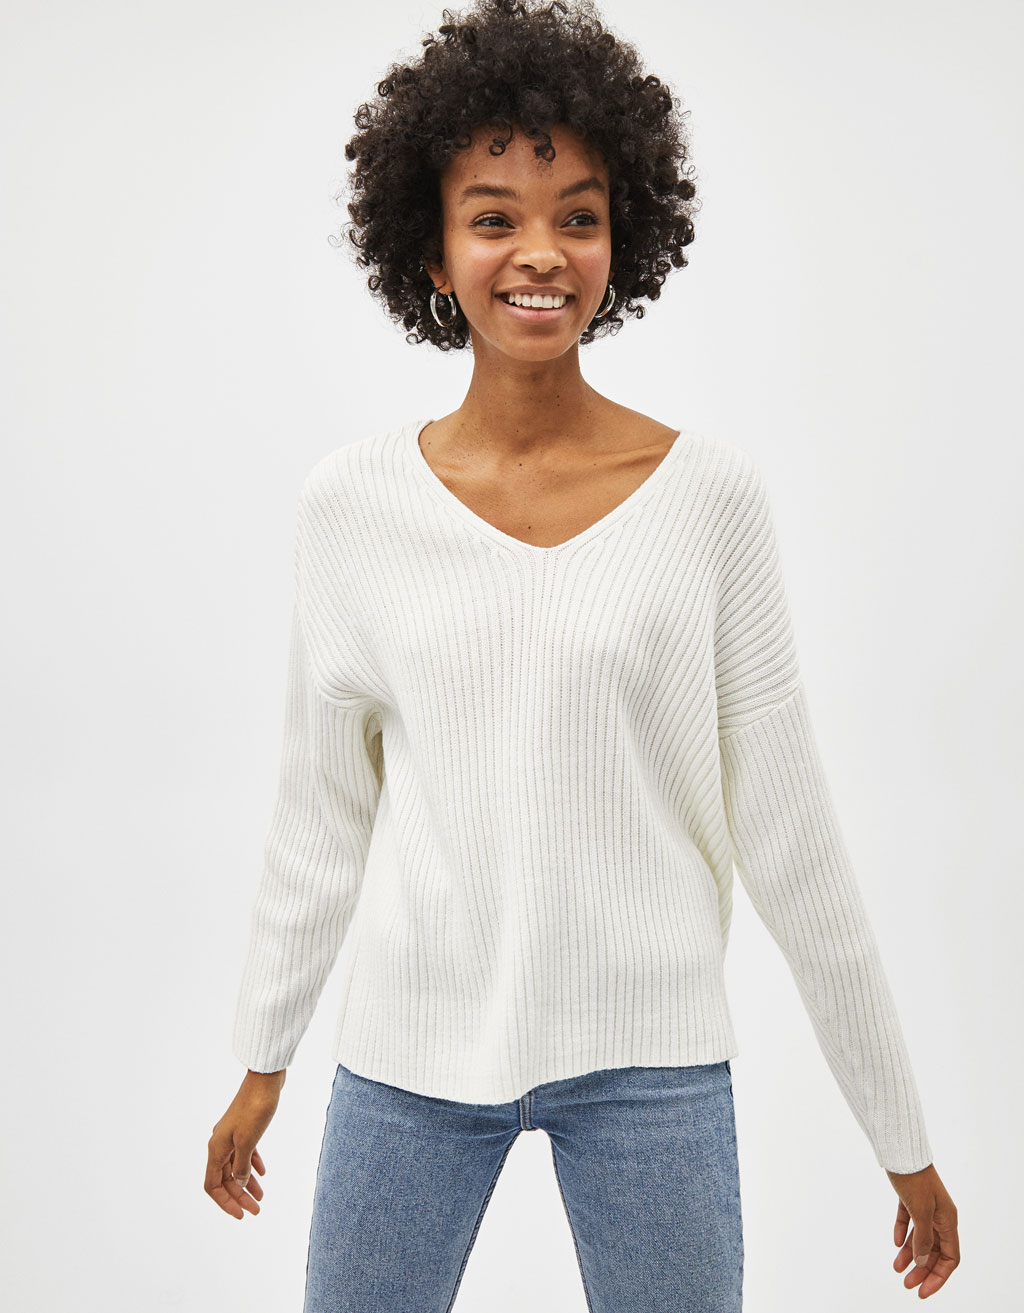 Oversized V-neck sweater